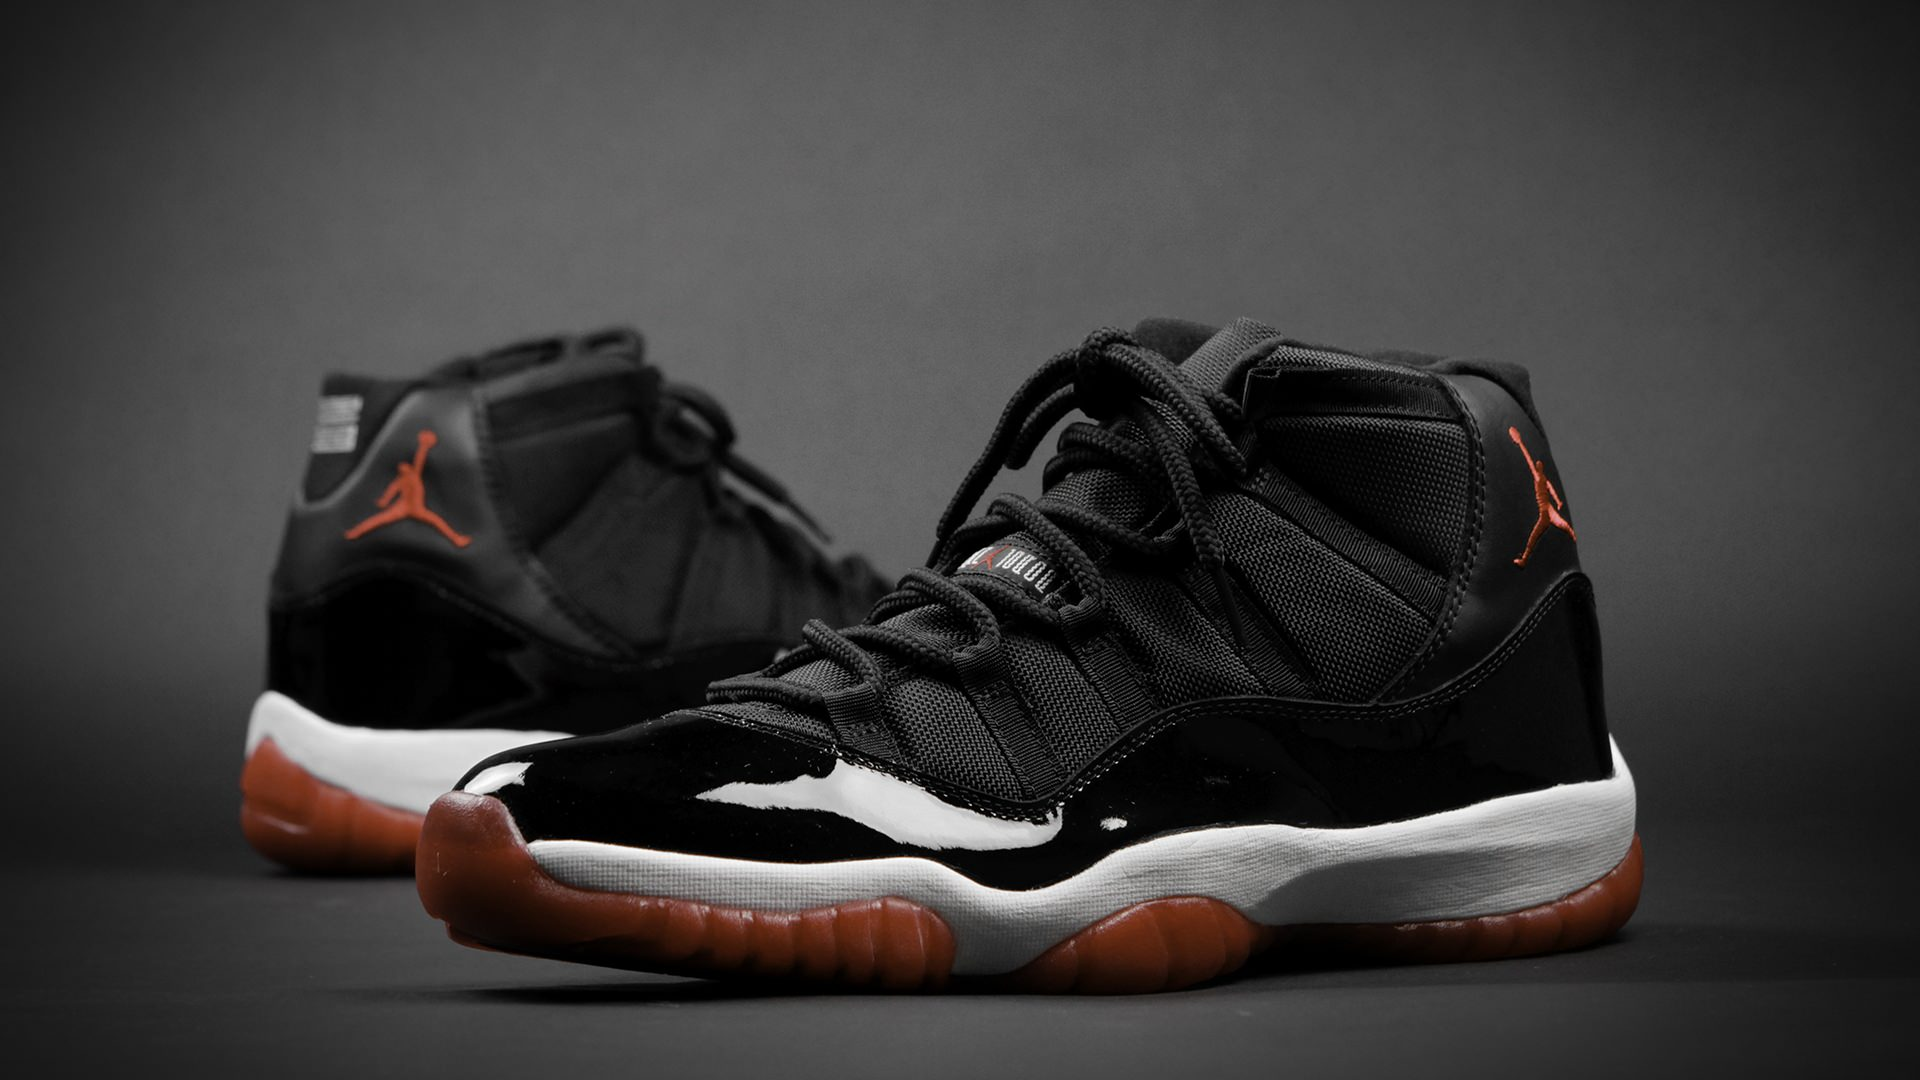 com11616ceb915 NIKE AIR JORDAN XI RETRO WALLPAPER 1920jpeg 1920x1080